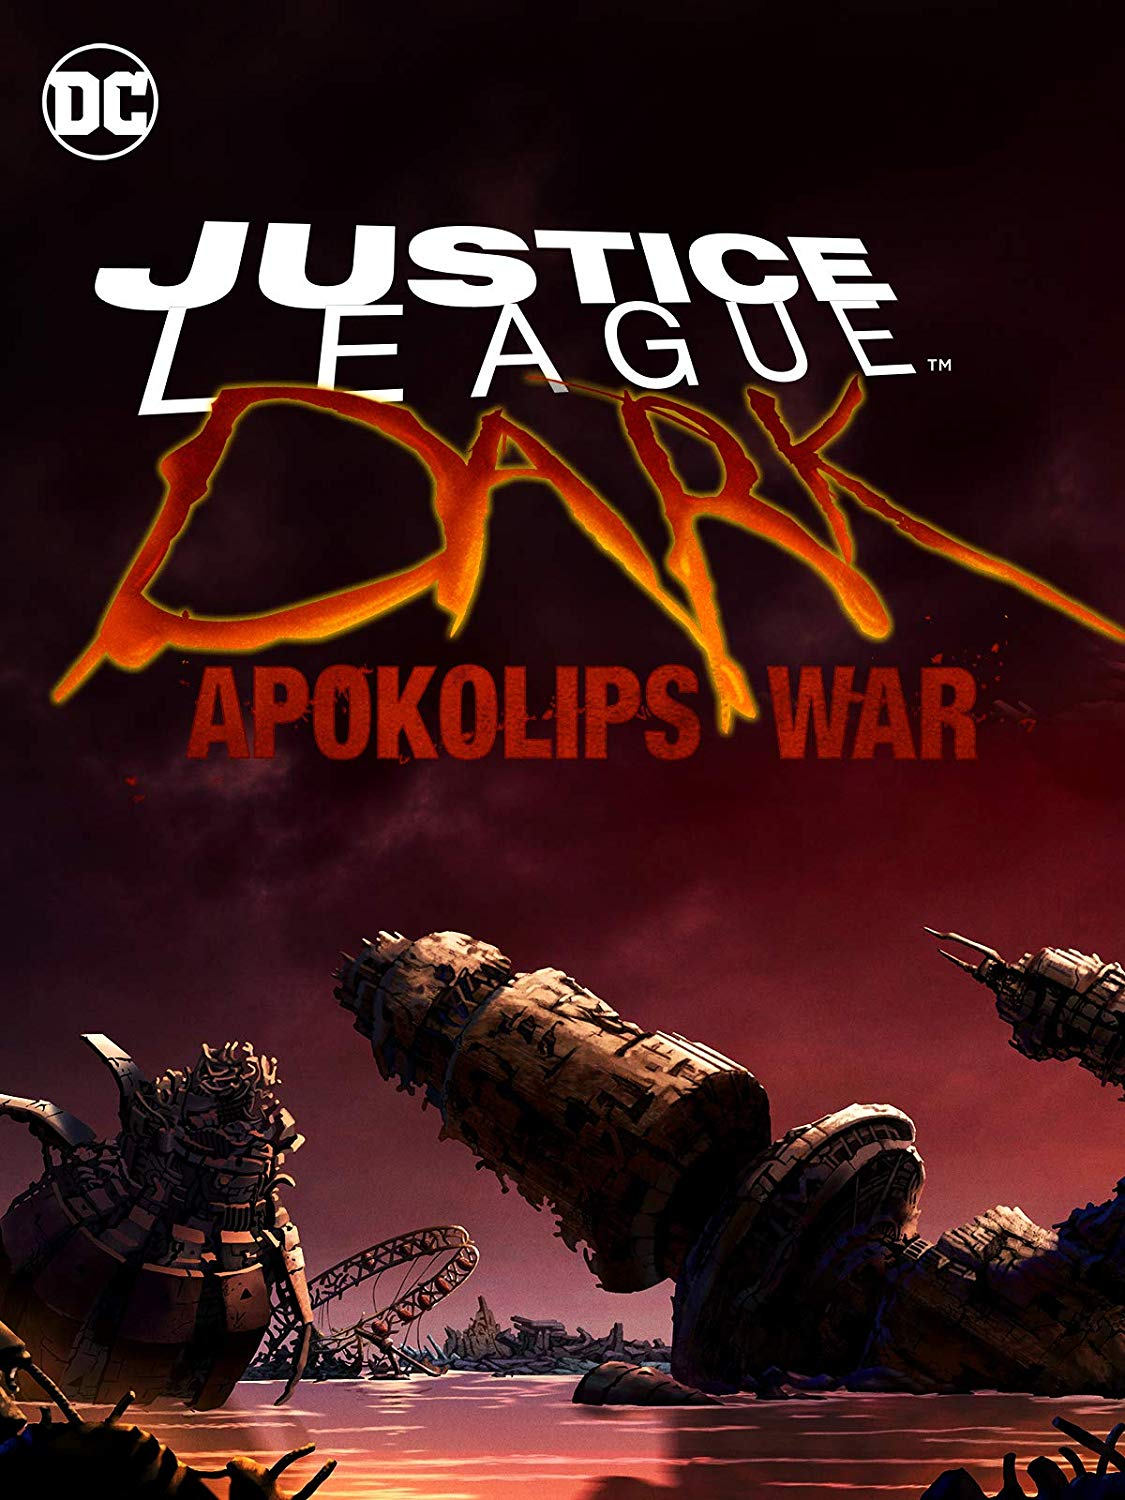 Justice League Dark Apokolips War Animated Movie Cast Announced Superman Homepage